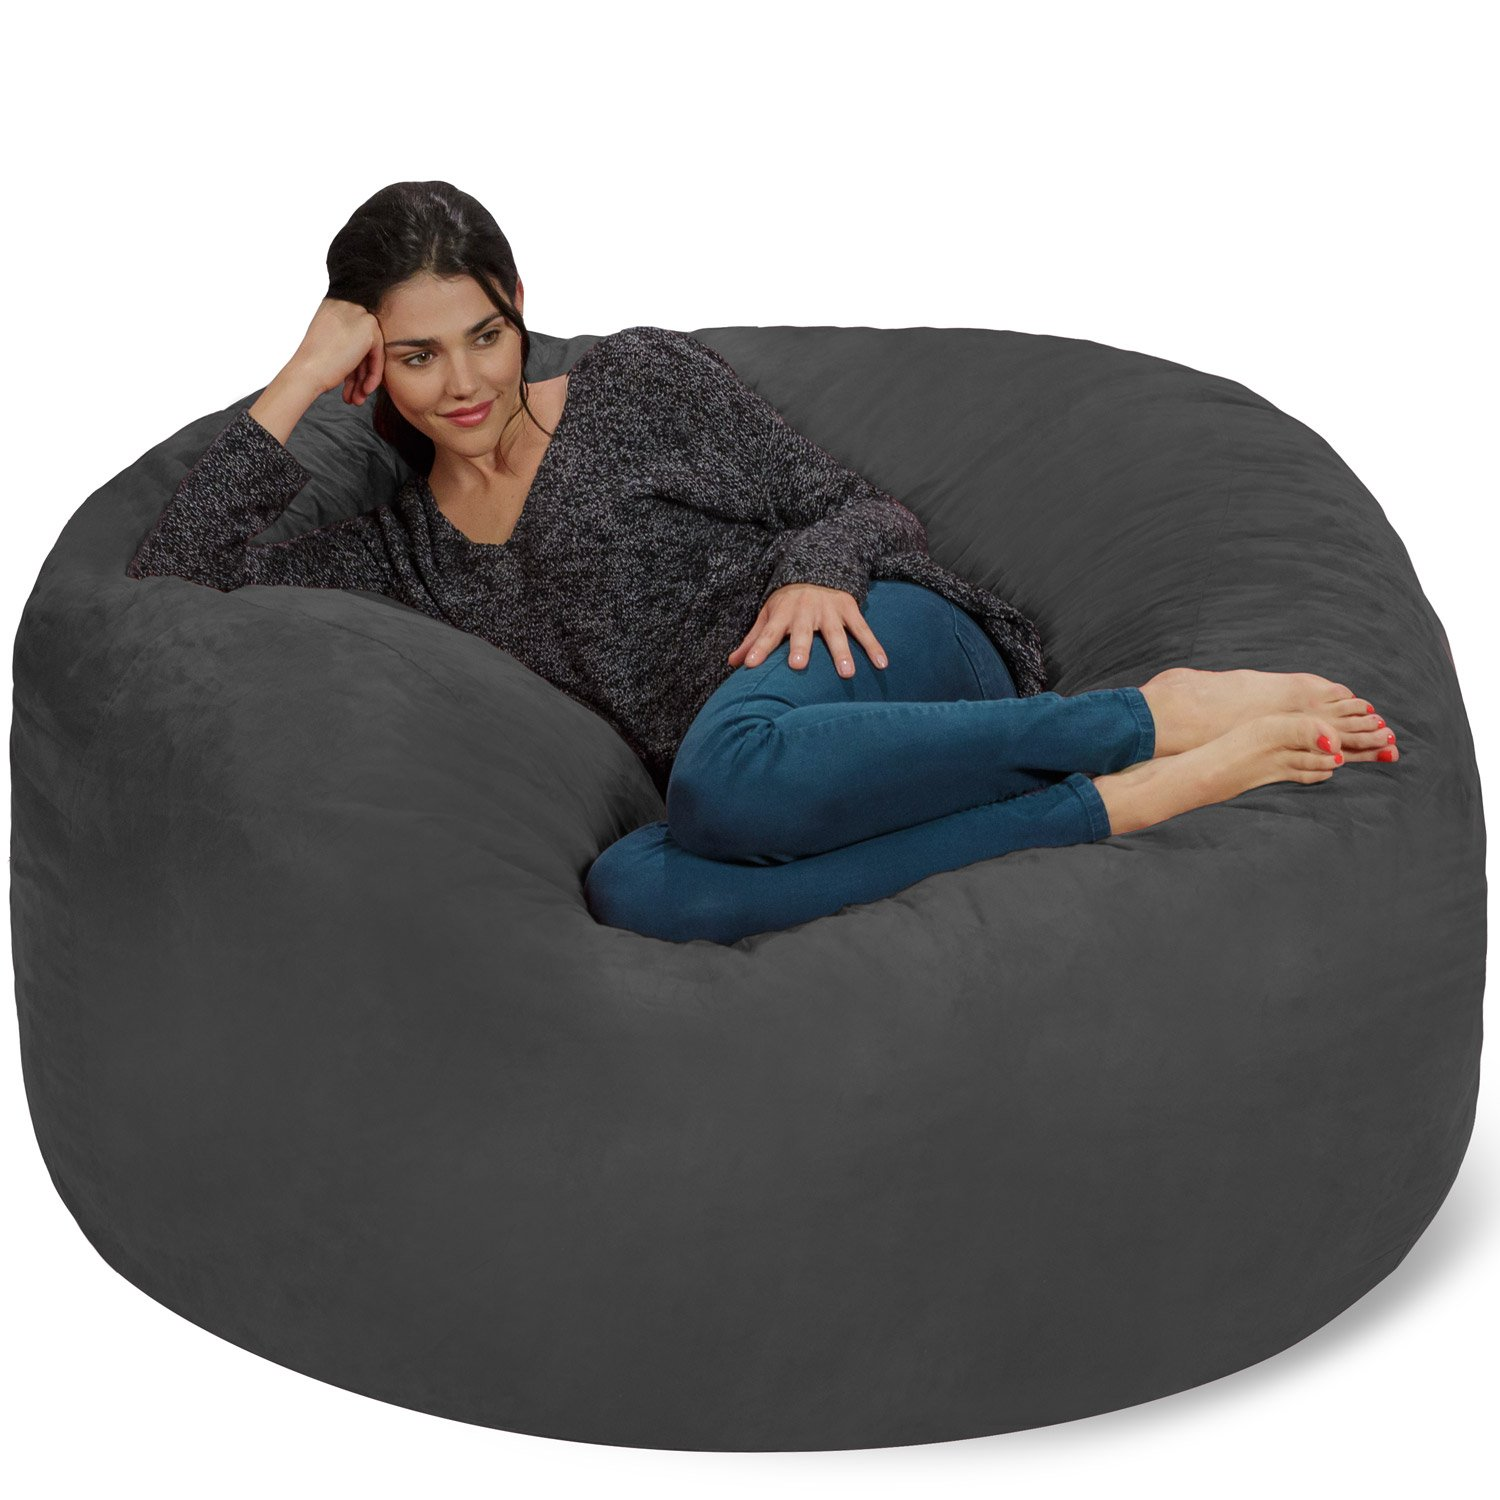 Chill Sack Bean Bag Chair: Giant 5' Memory Foam Furniture Bean Bag - Big Sofa with Soft Micro Fiber Cover - Charcoal by Chill Sack